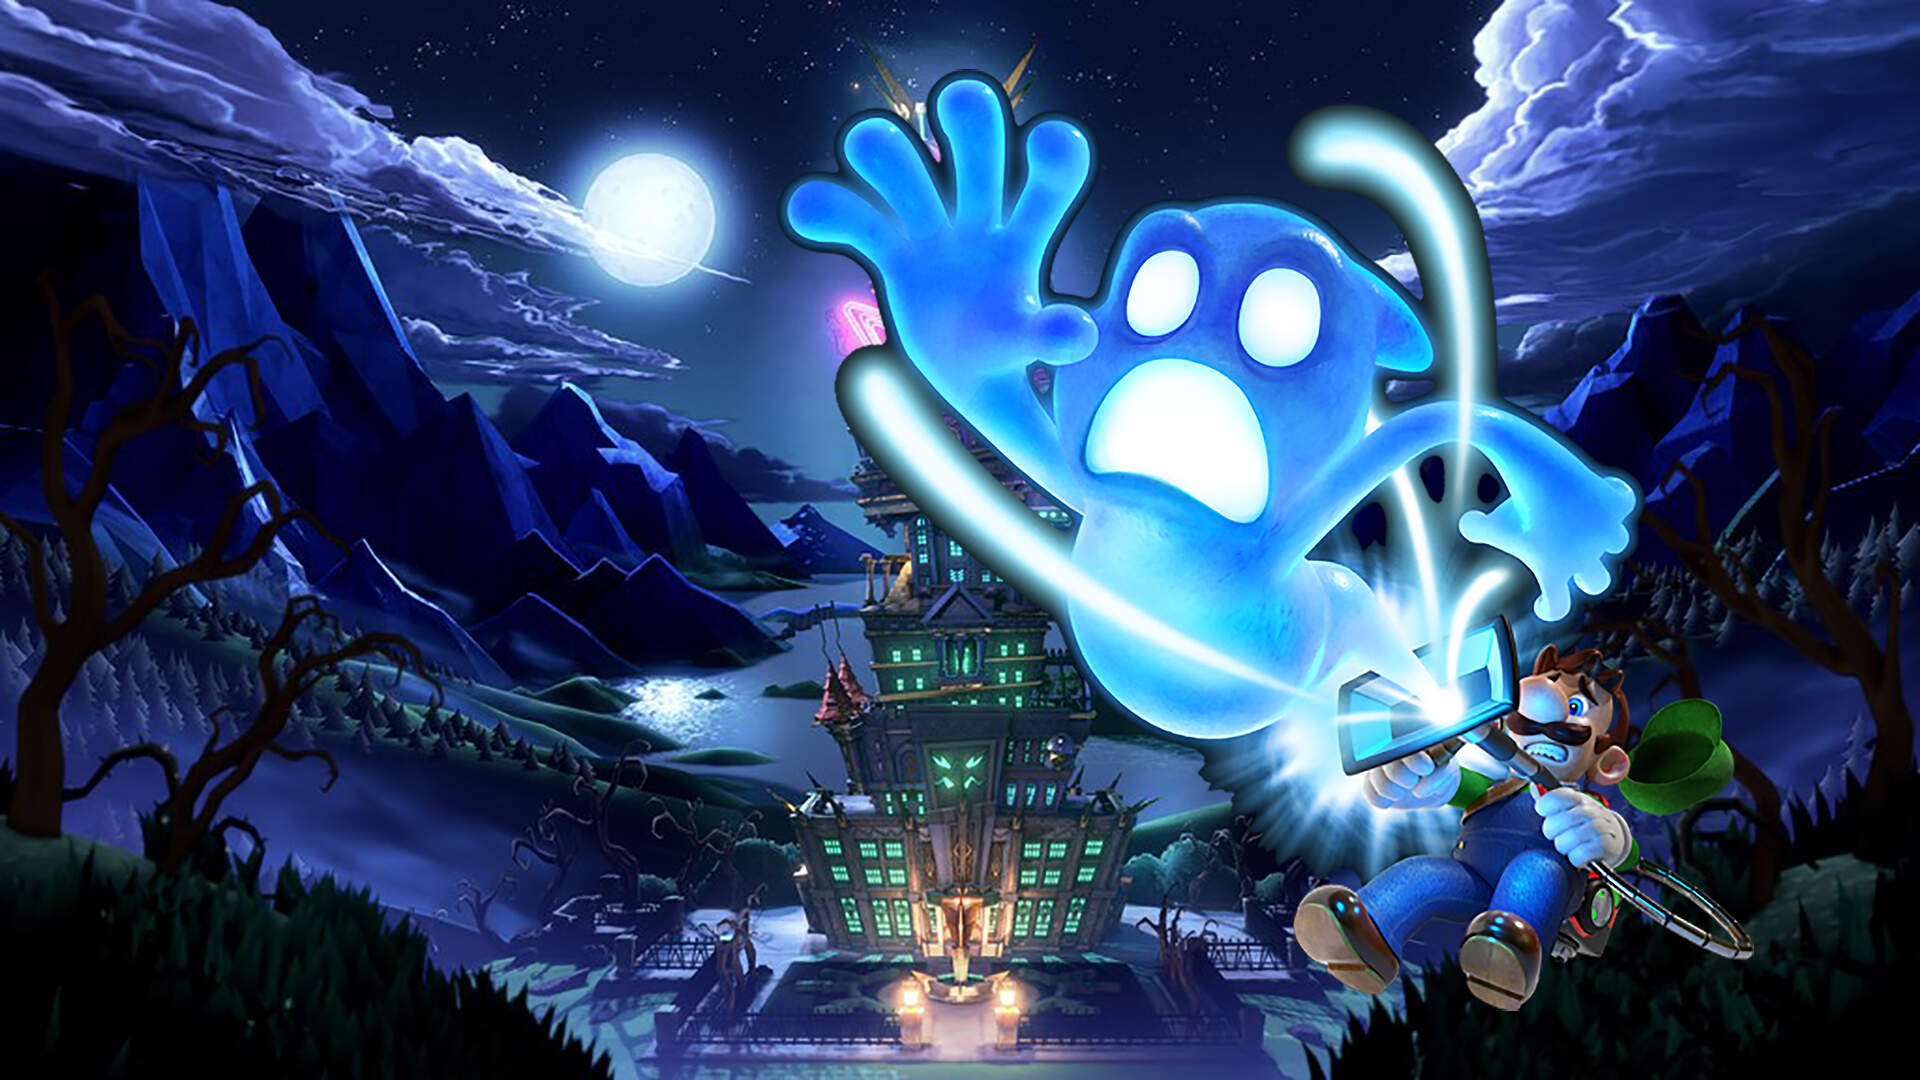 Luigi's Mansion 3 Sells Over 5 Million With the Help of its Charm (and Polterpup)